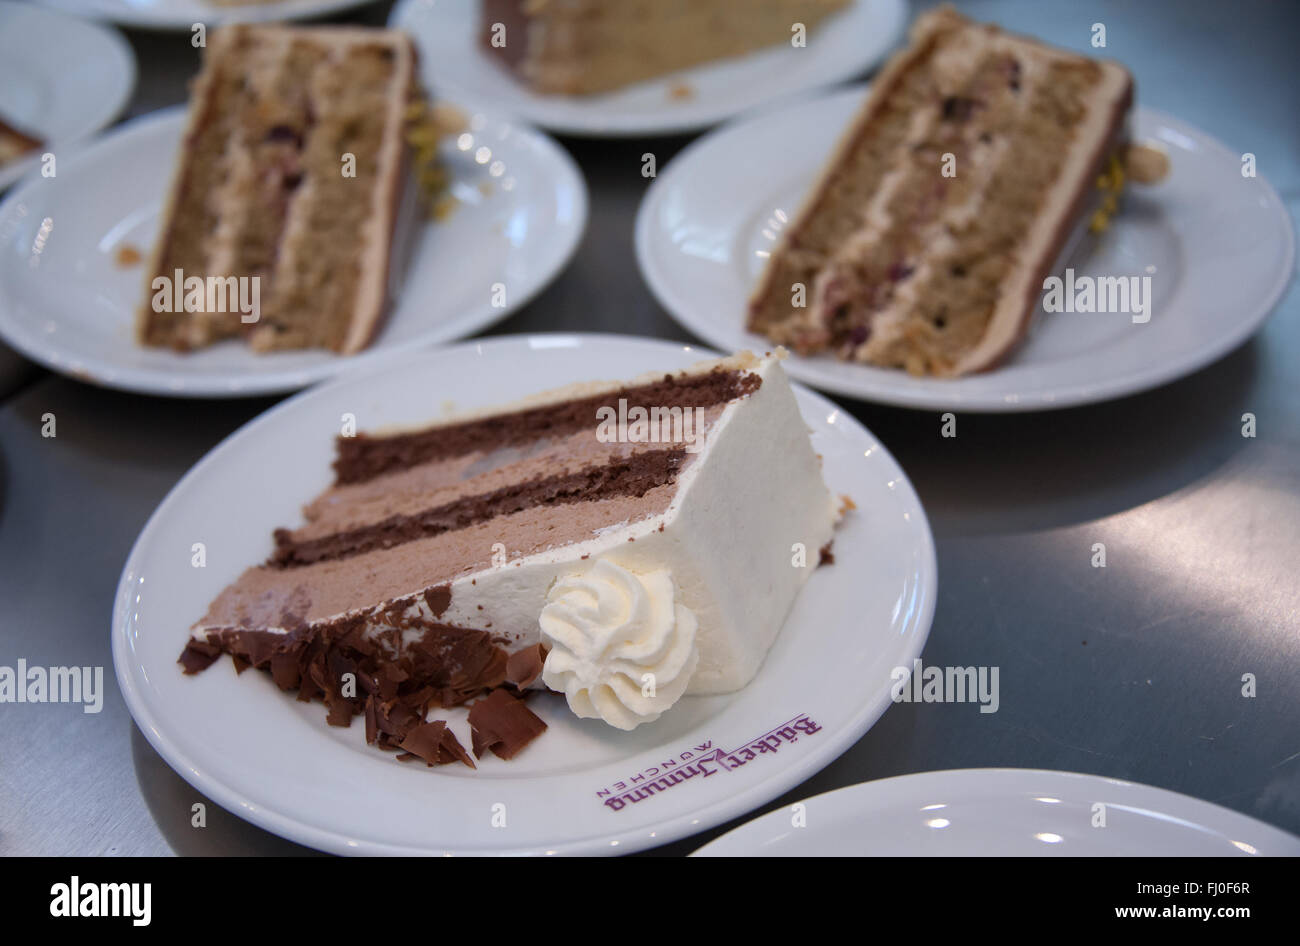 Munich, Germany. 26th Feb, 2016. Various pieces of cake pictured at a booth at the Internationale Handwerksmesse Stock Photo